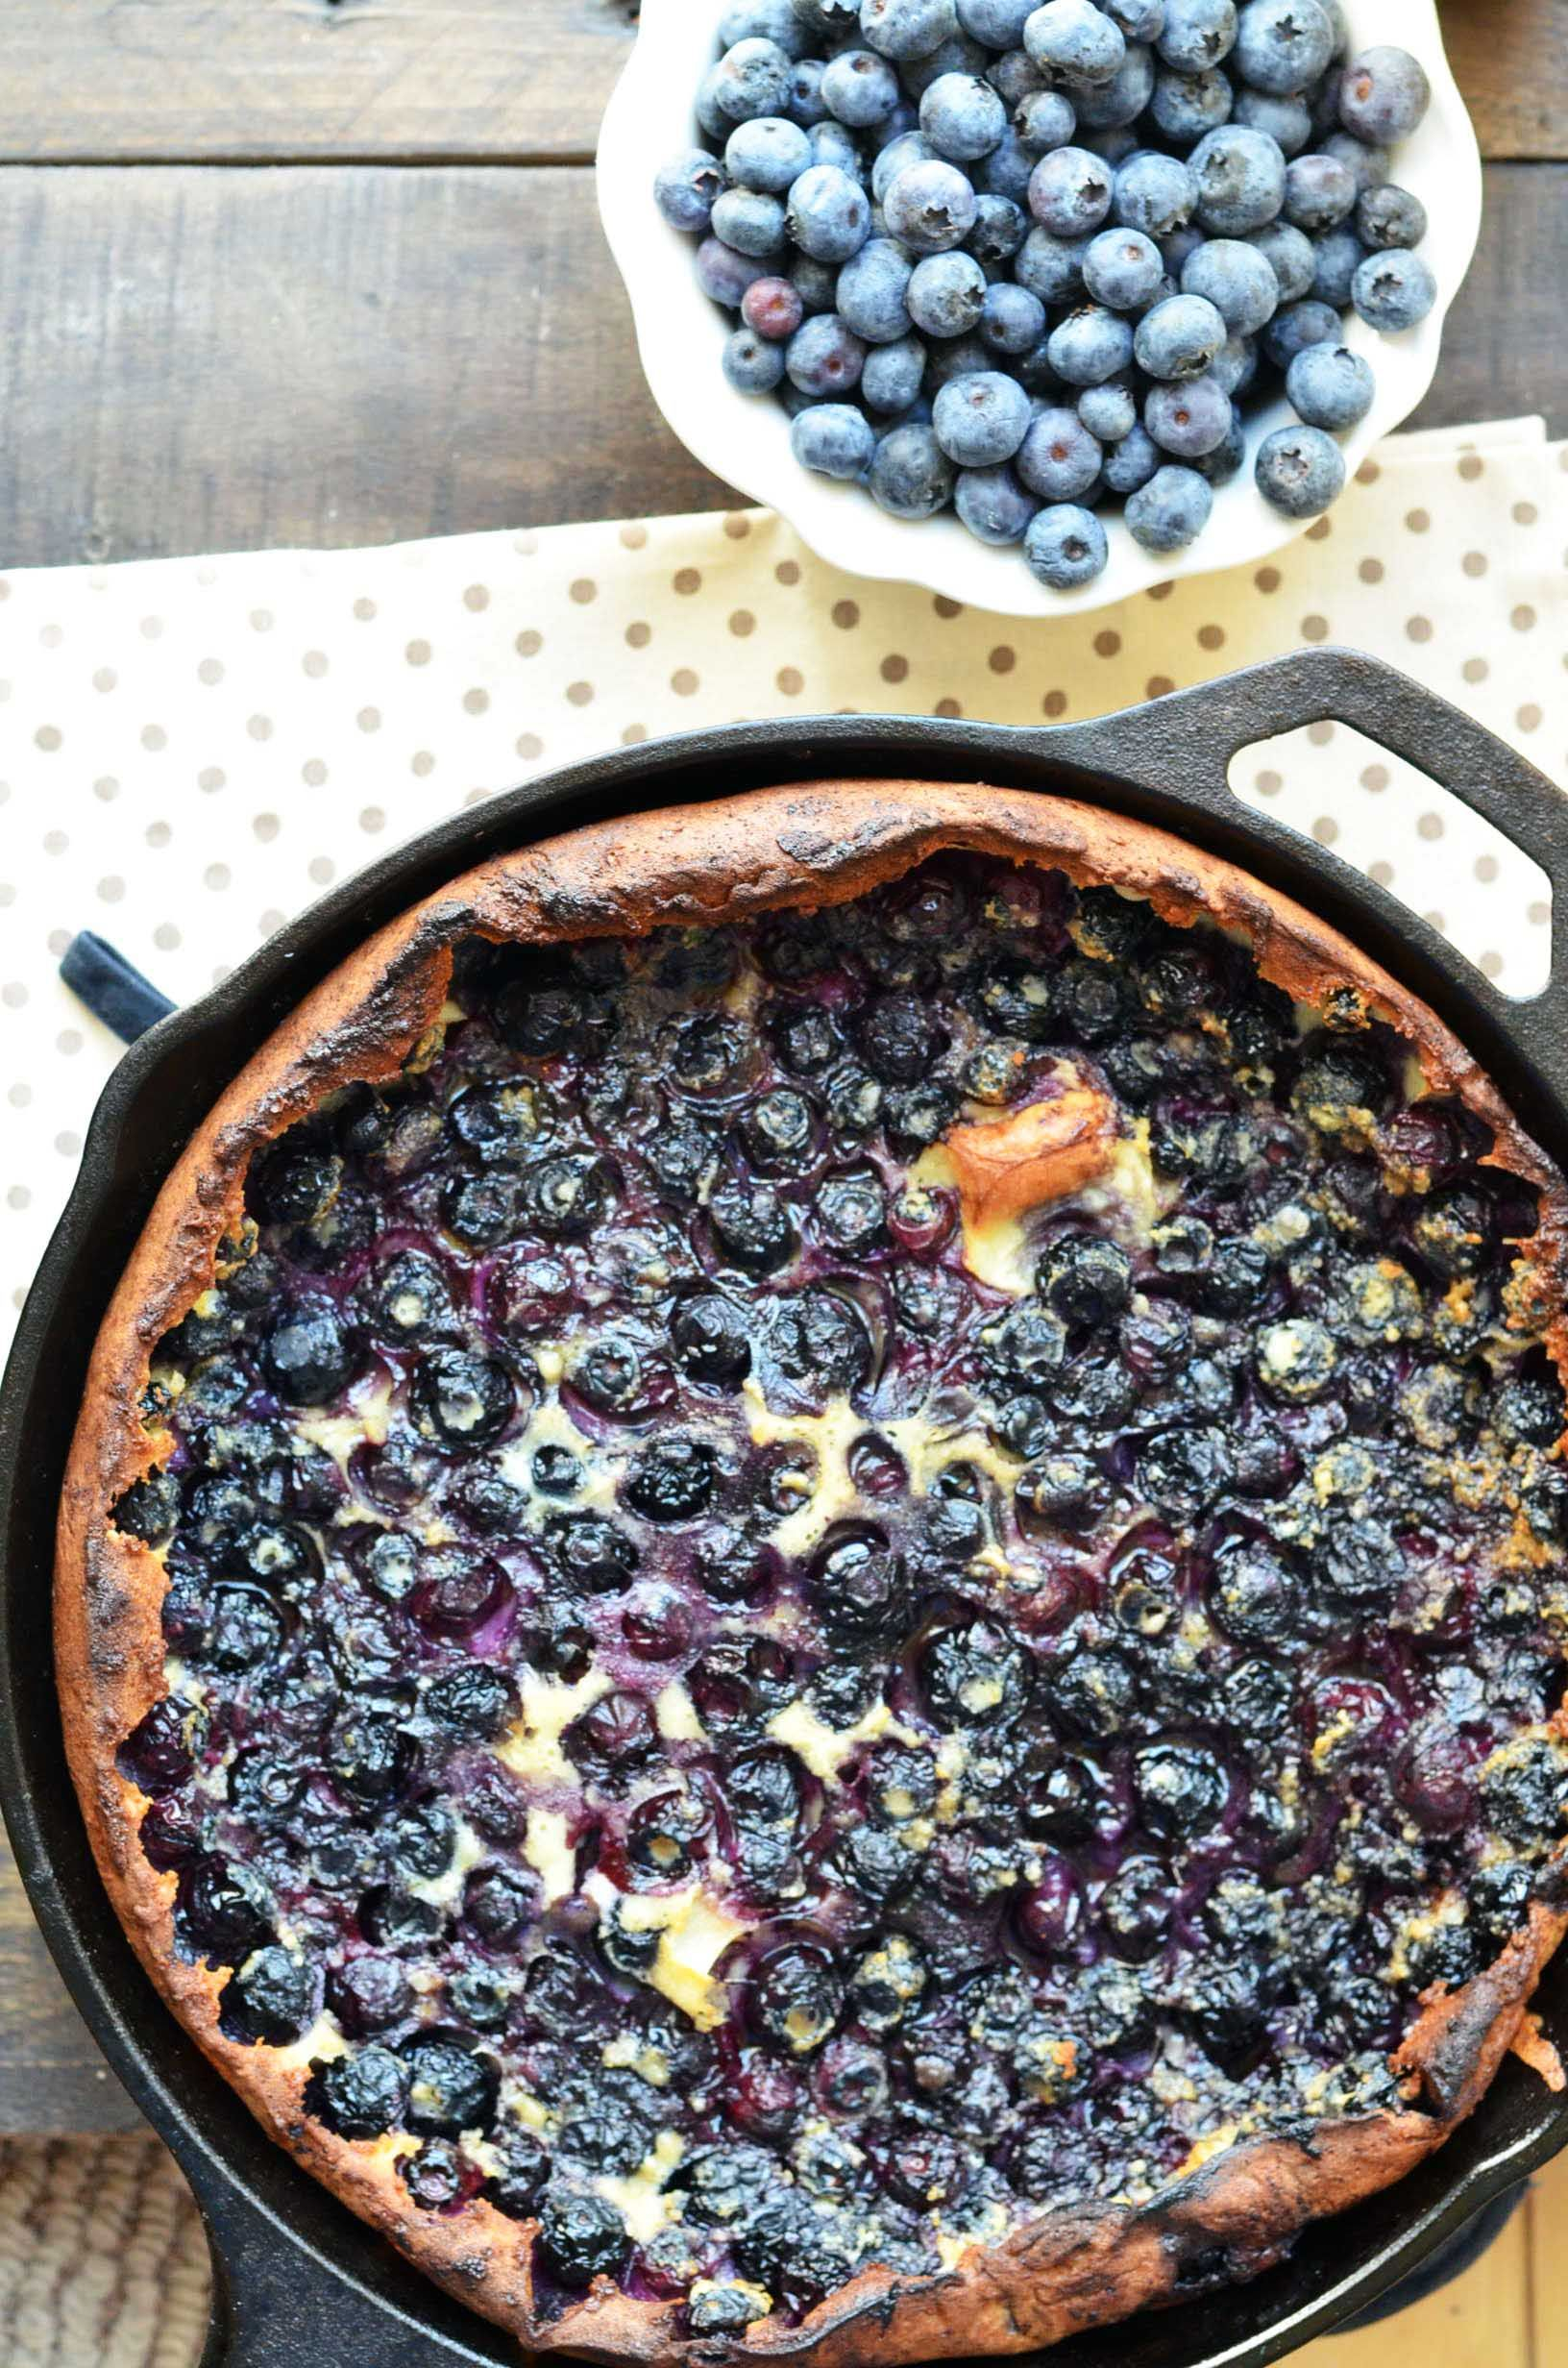 Blueberry lemon dutch baby for breakfast (or dinner if you live in my house)